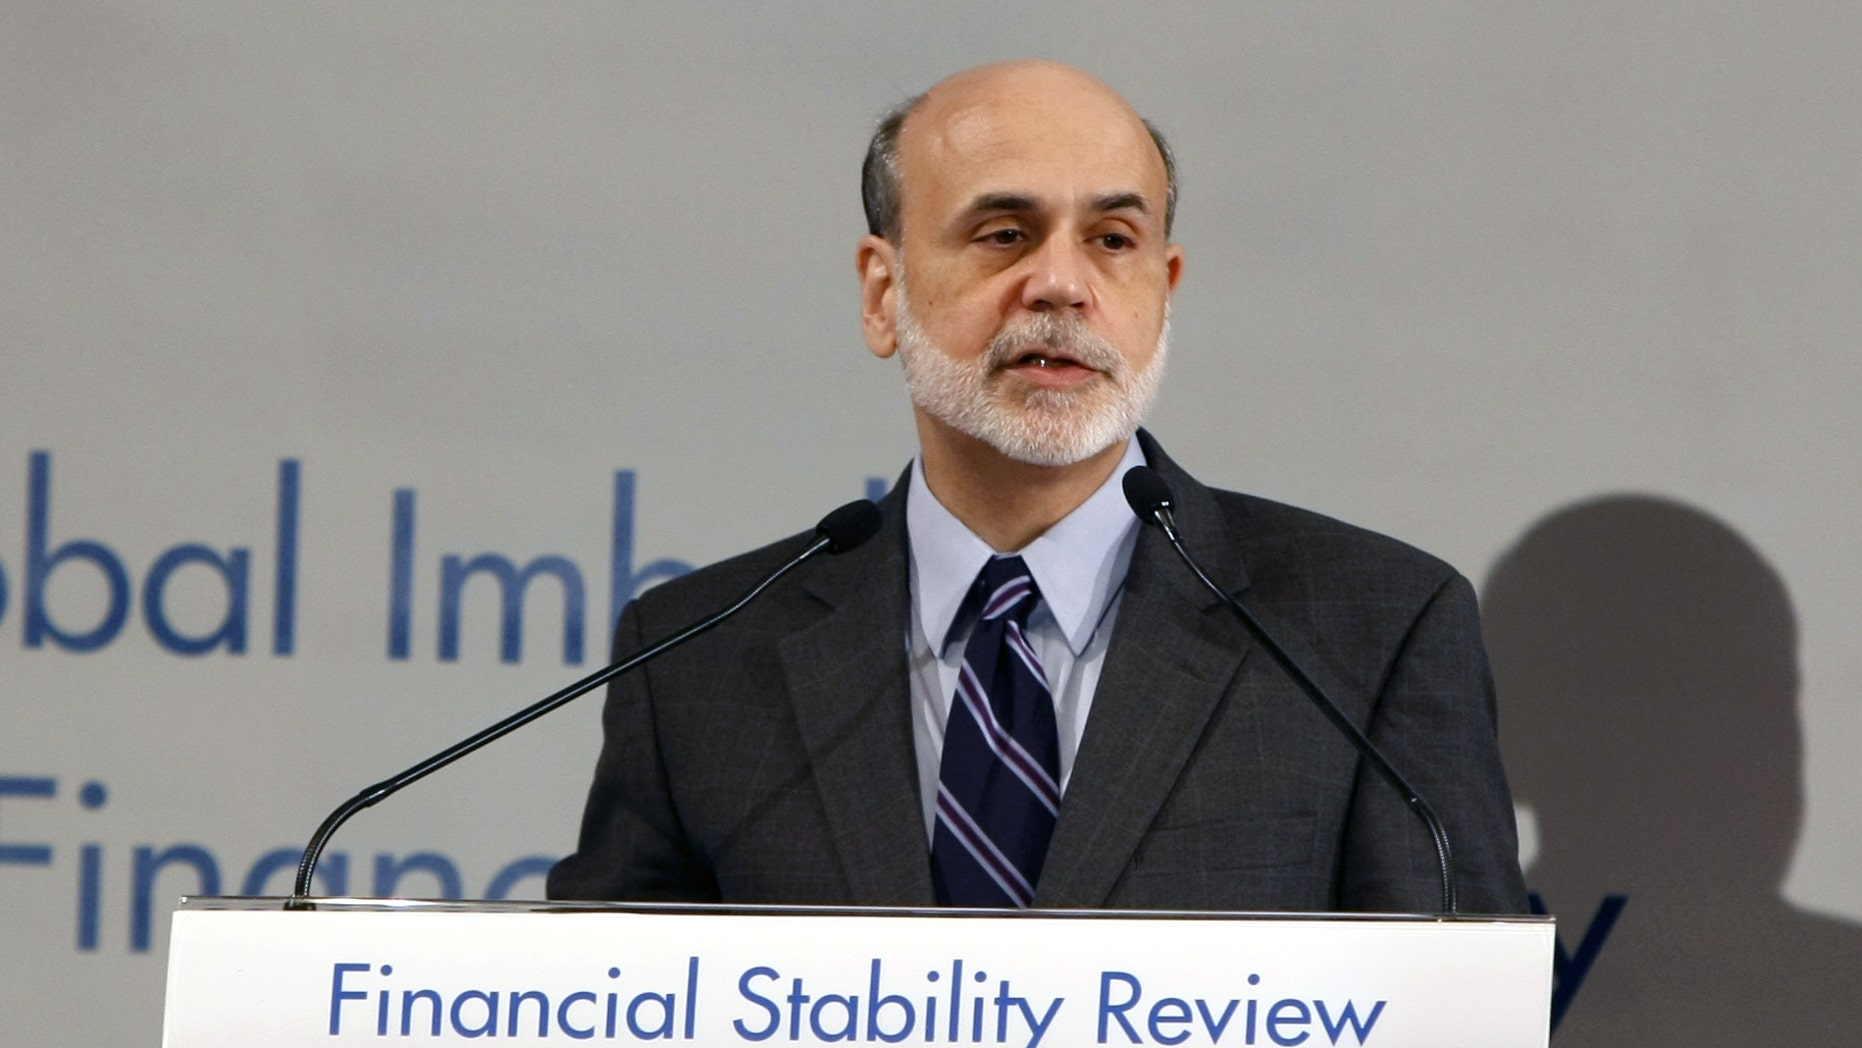 Feb. 18: Federal Reserve Chairman Ben Bernanke delivers a speech during a meeting with G20 central bank governors in Paris ahead of a G20 Finance meeting.